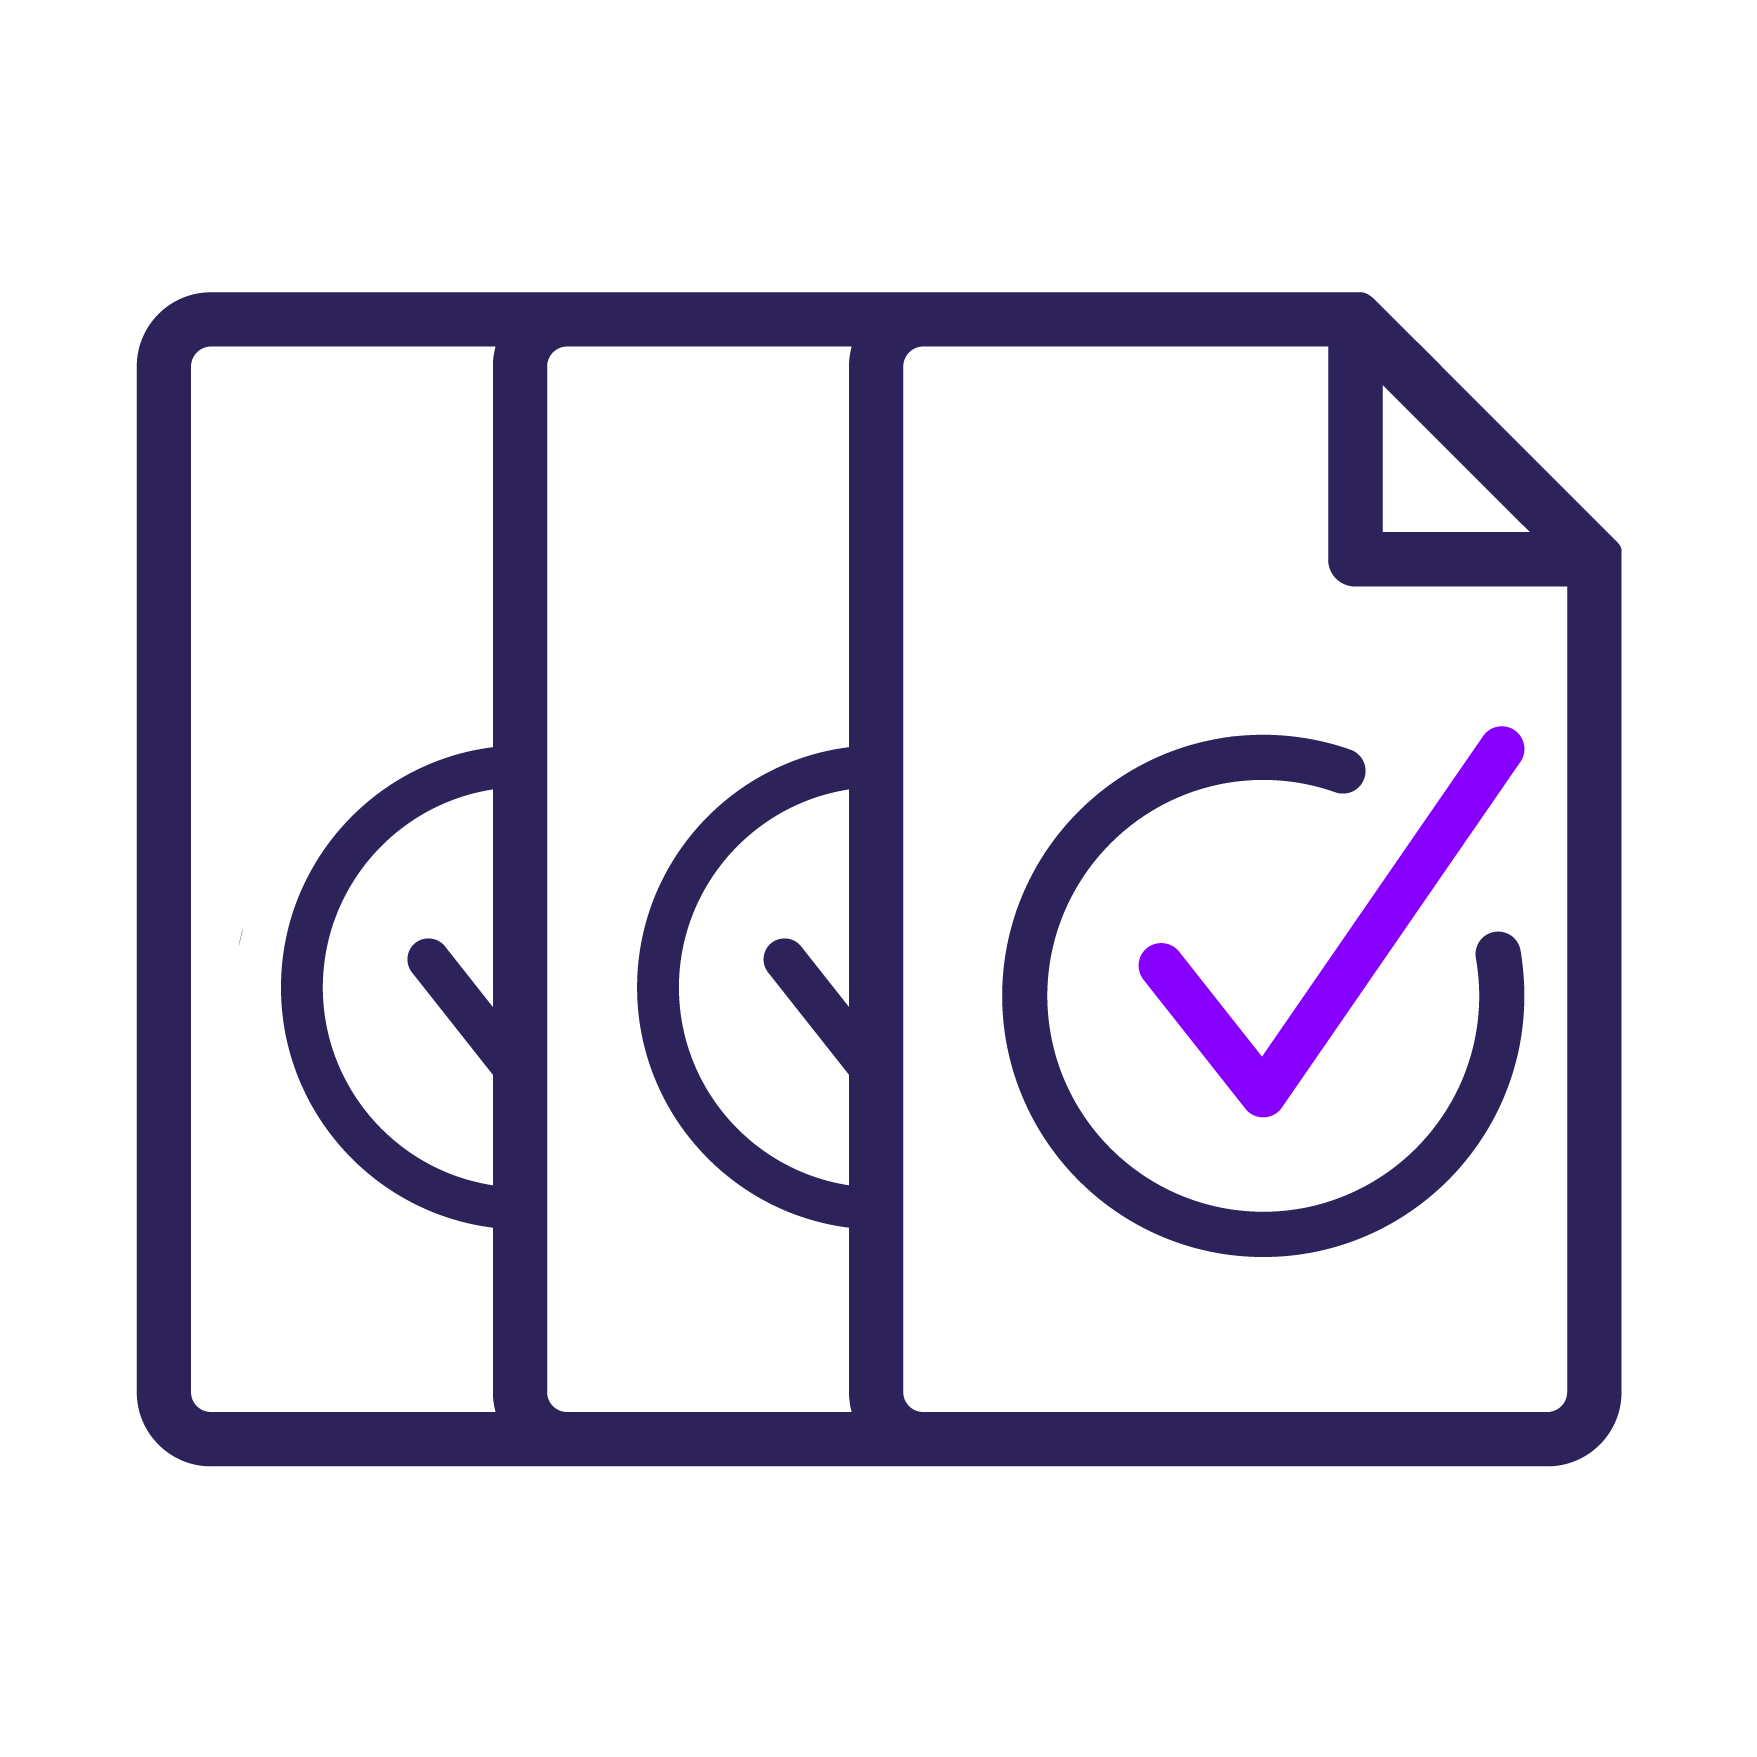 File icon with checkmark